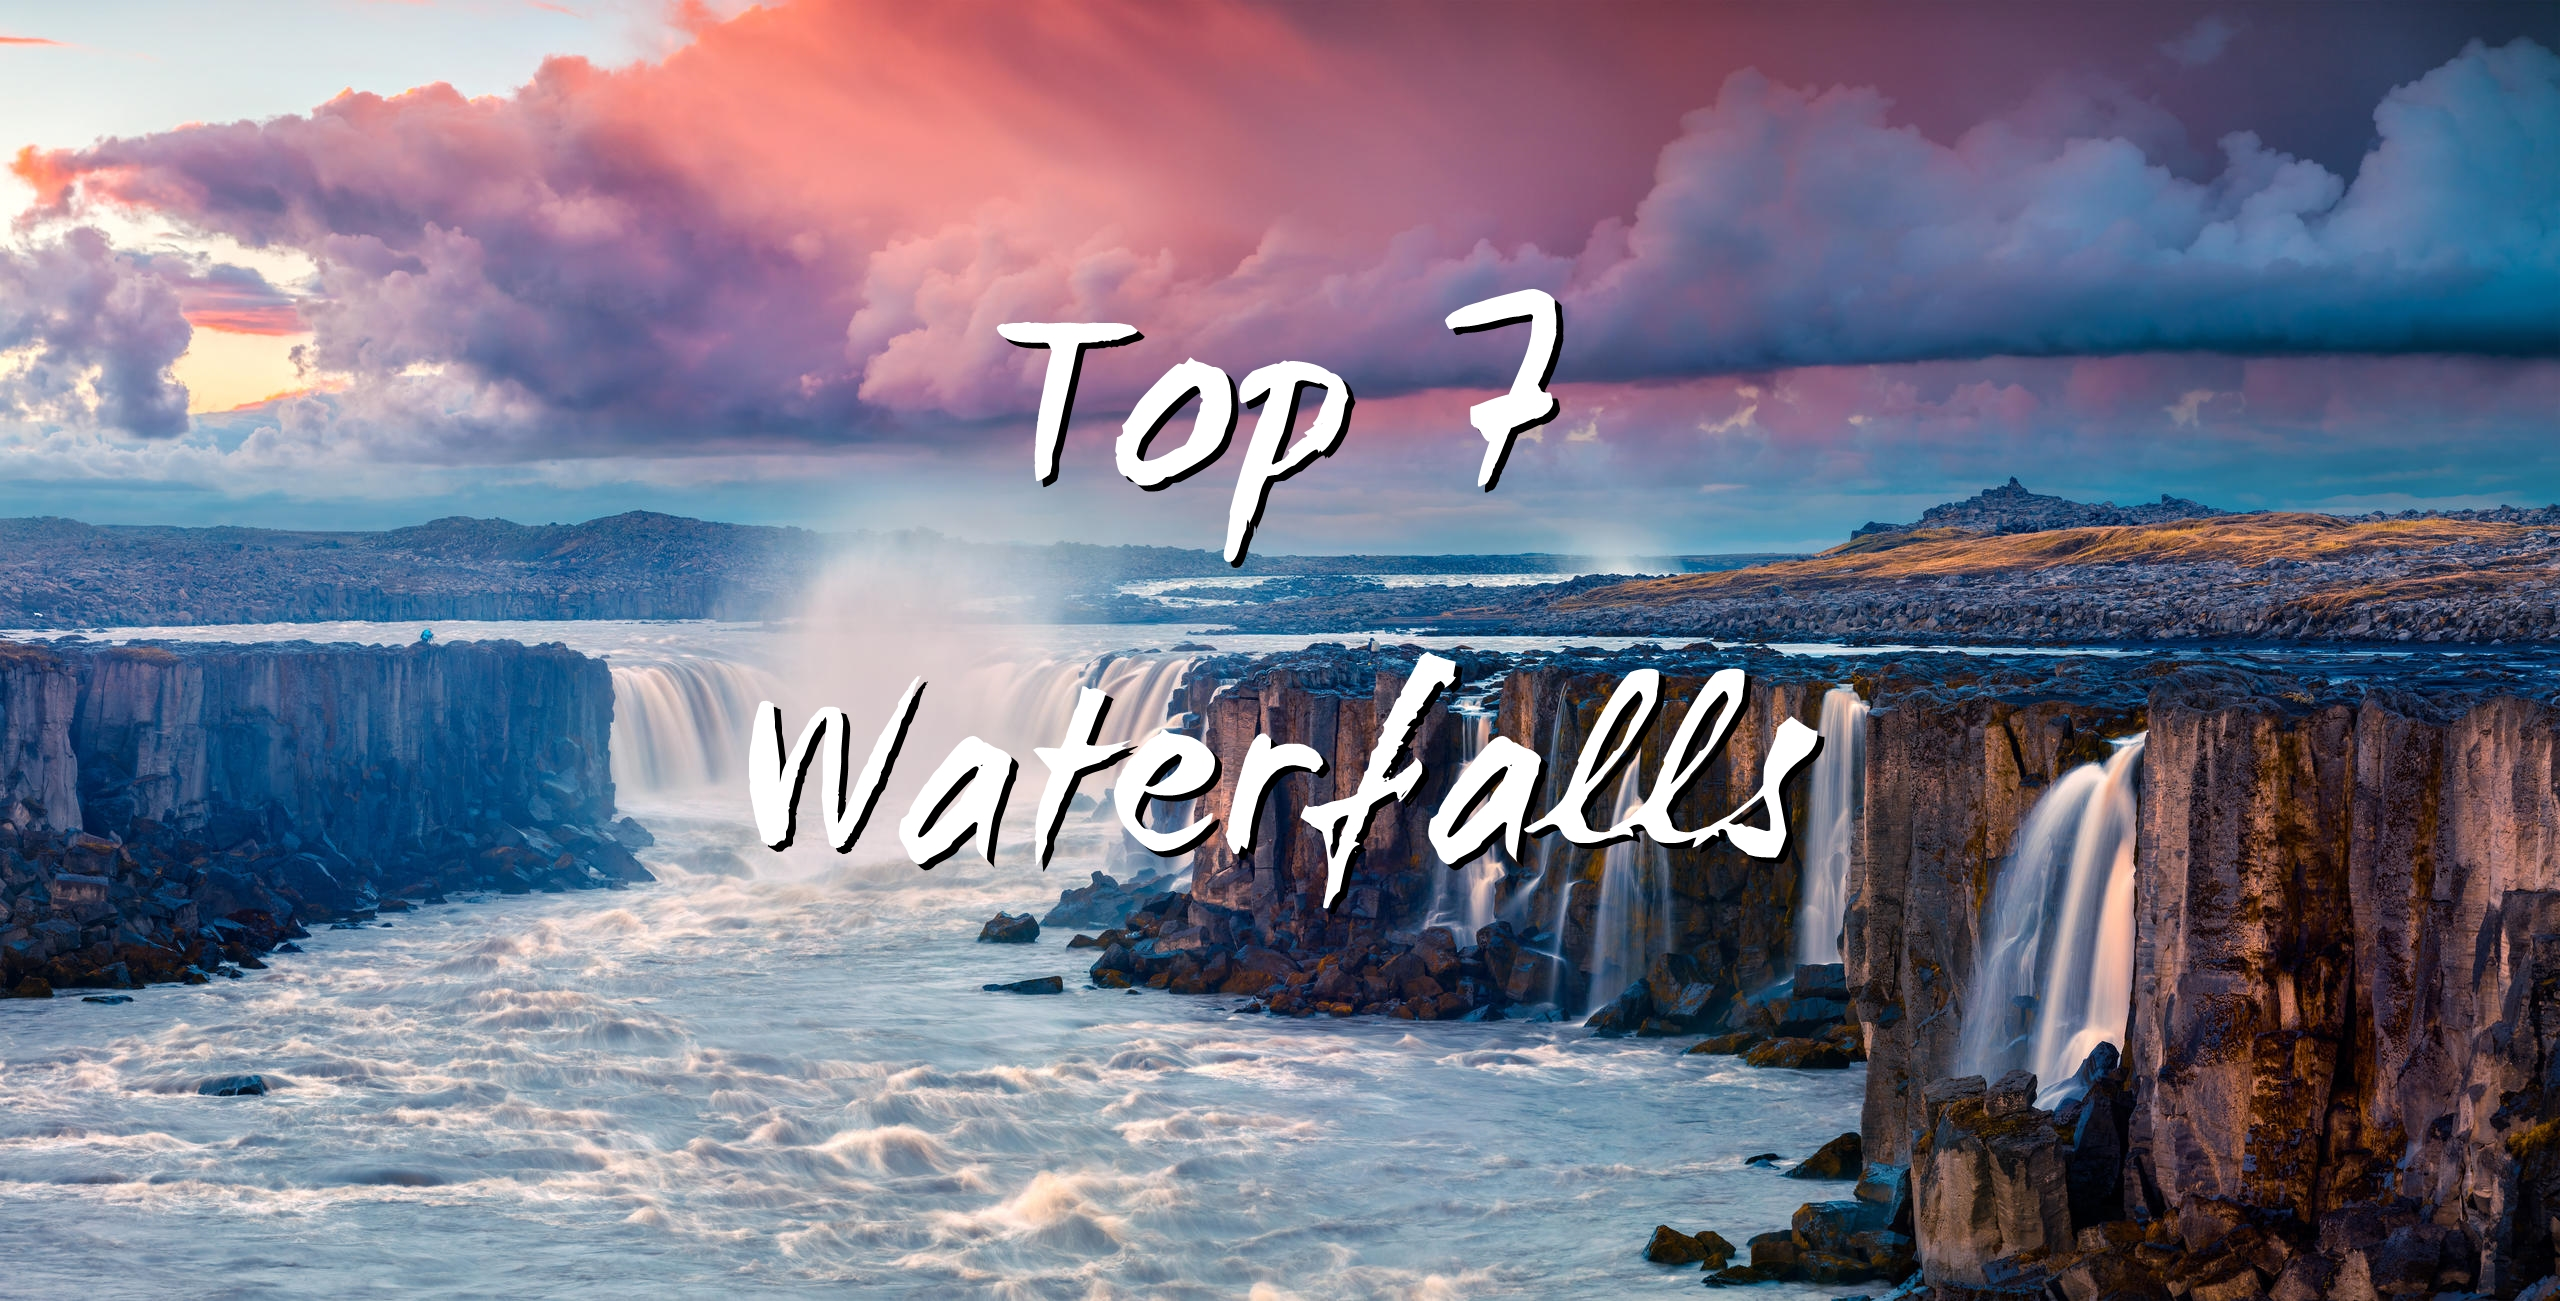 Top seven waterfalls